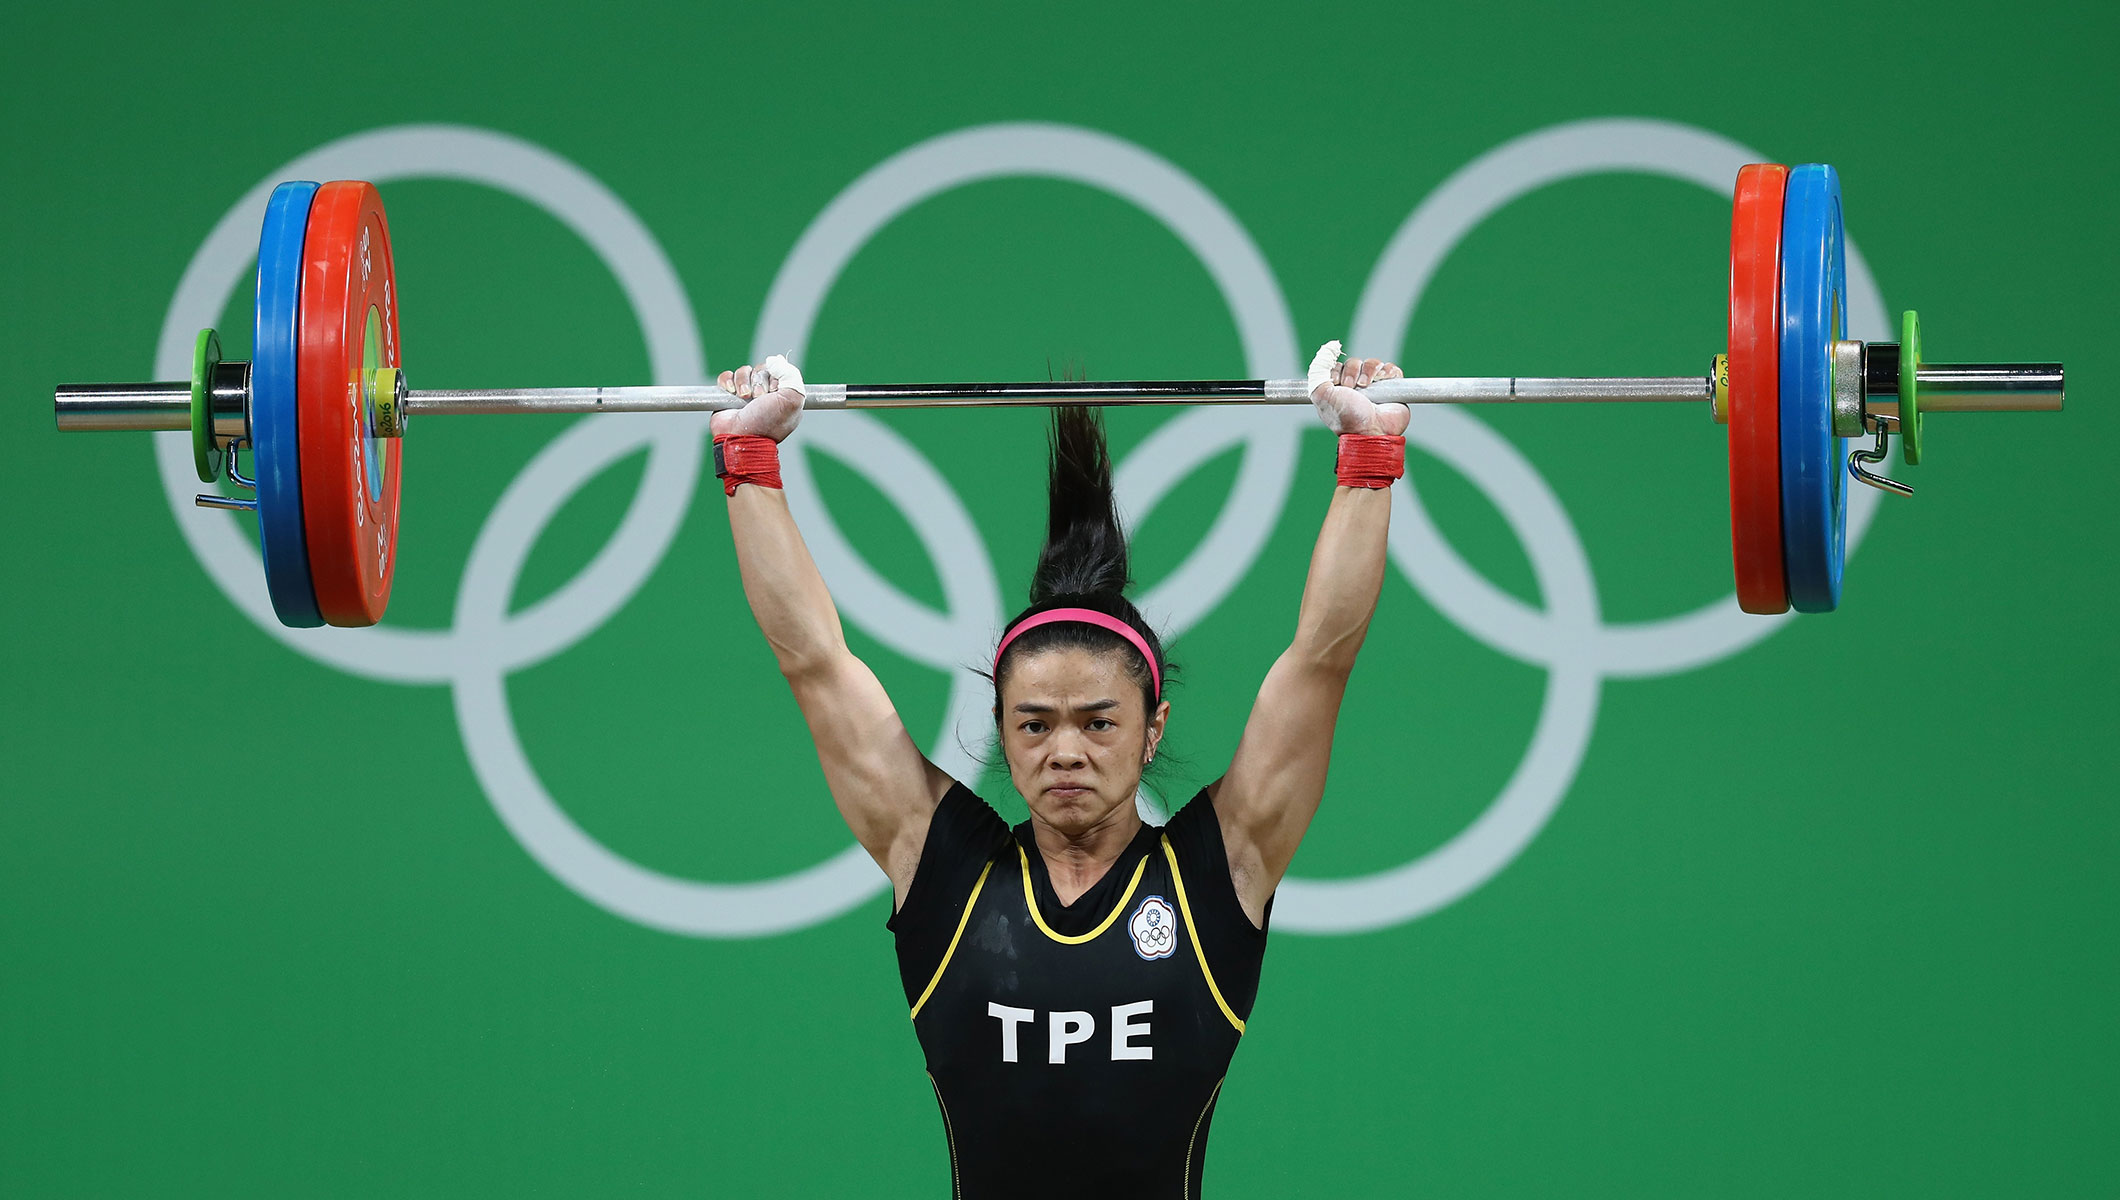 Shu-Ching Hsu of Chinese Taipei competes during the Women's 53kg Group A weightlifting contest on Day 2 of the Rio 2016 Olympic Games at Riocentro - Pavilion 2 on August 7, 2016 in Rio de Janeiro, Brazil.